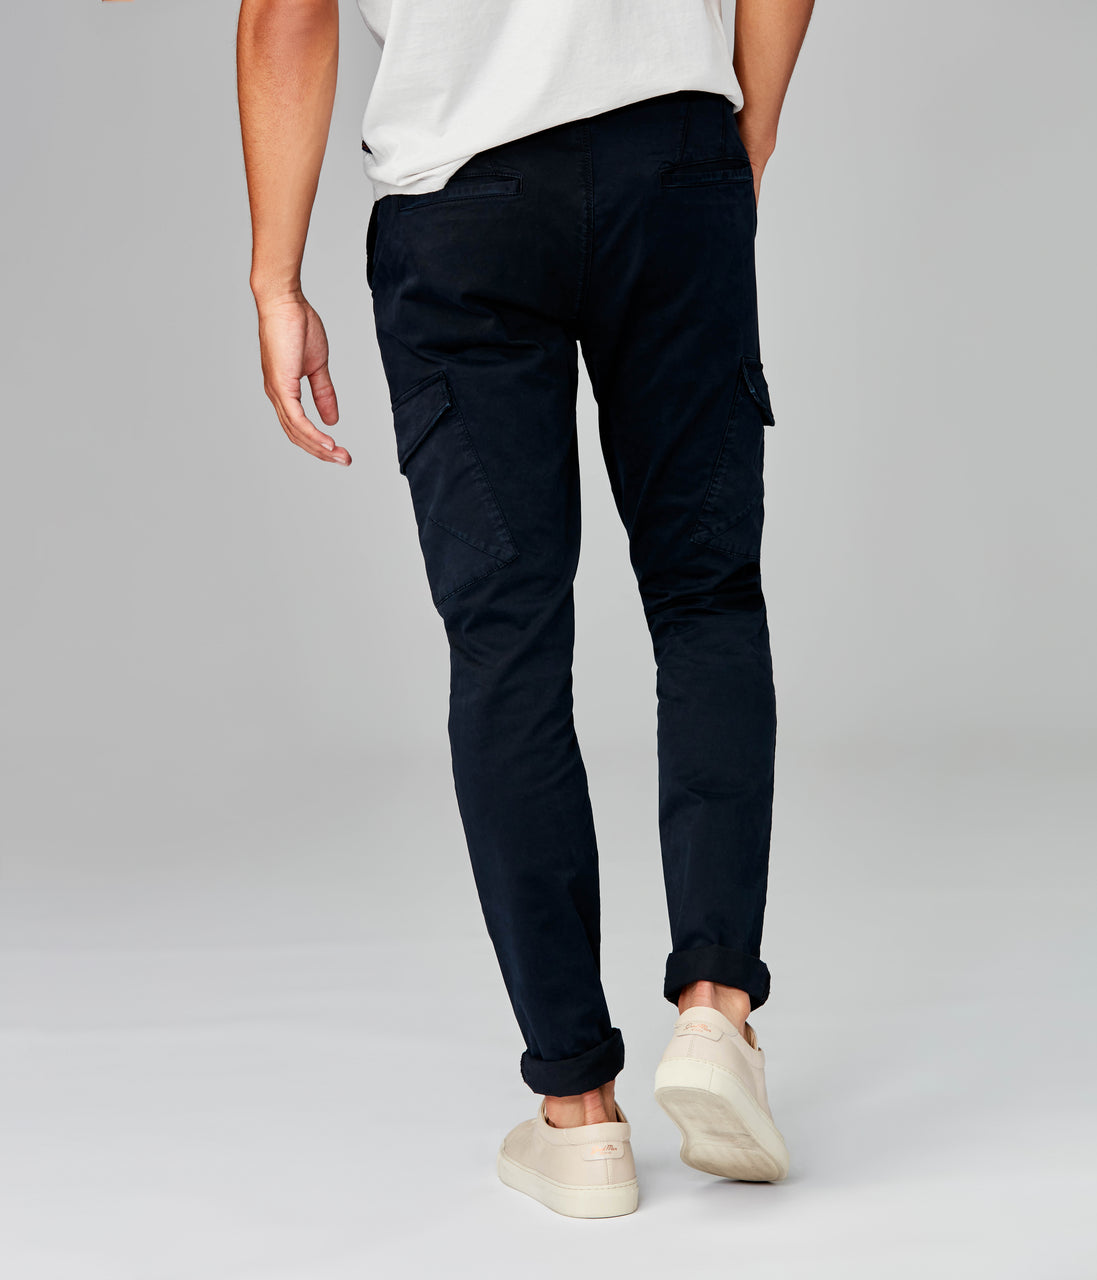 Pro Stretch Twill Star Cargo Chino - Black Navy - Good Man Brand - Pro Stretch Twill Star Cargo Chino - Black Navy